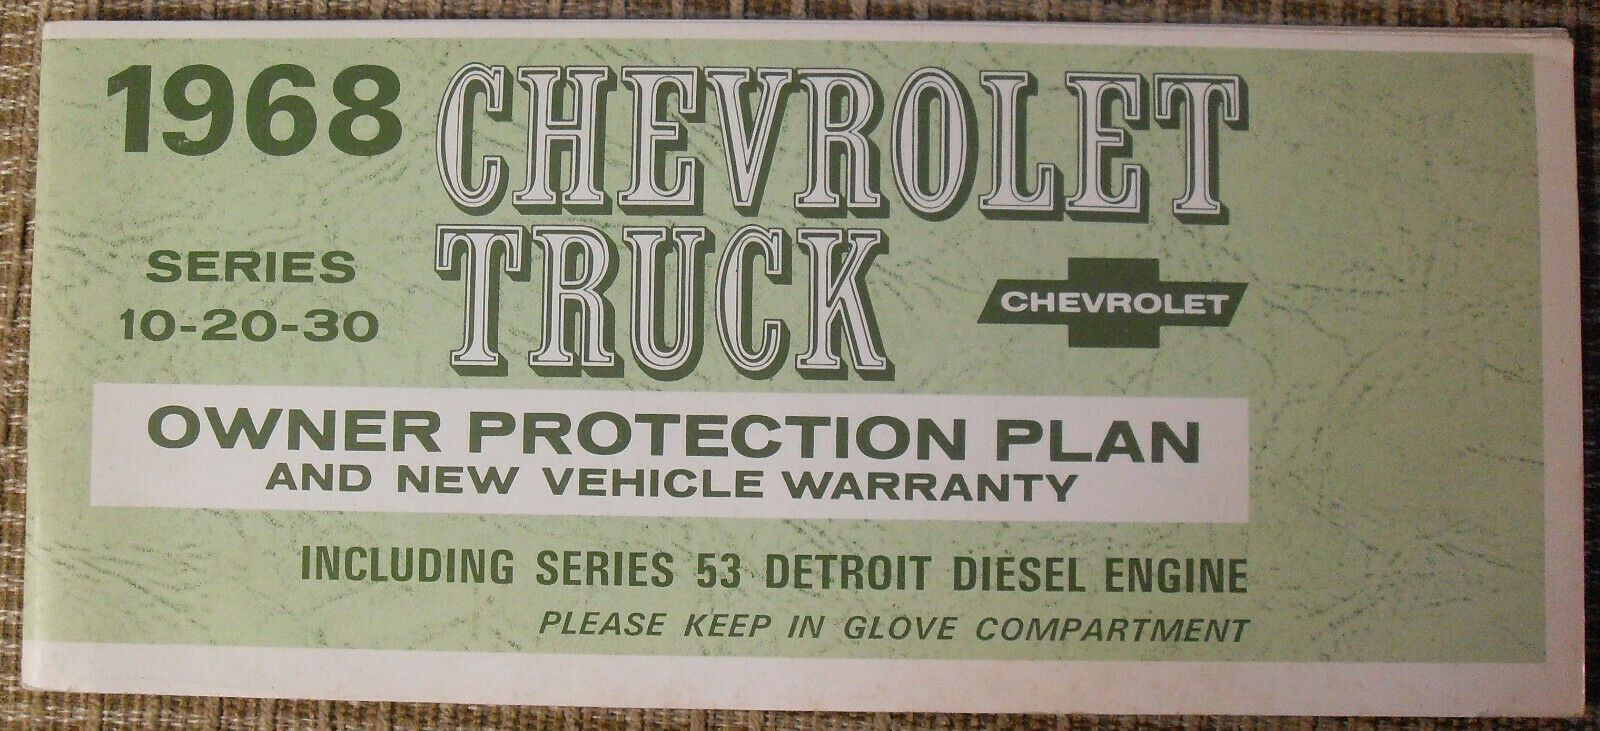 Original 1968 Chevrolet Truck Owners Protection Plan Booklet This